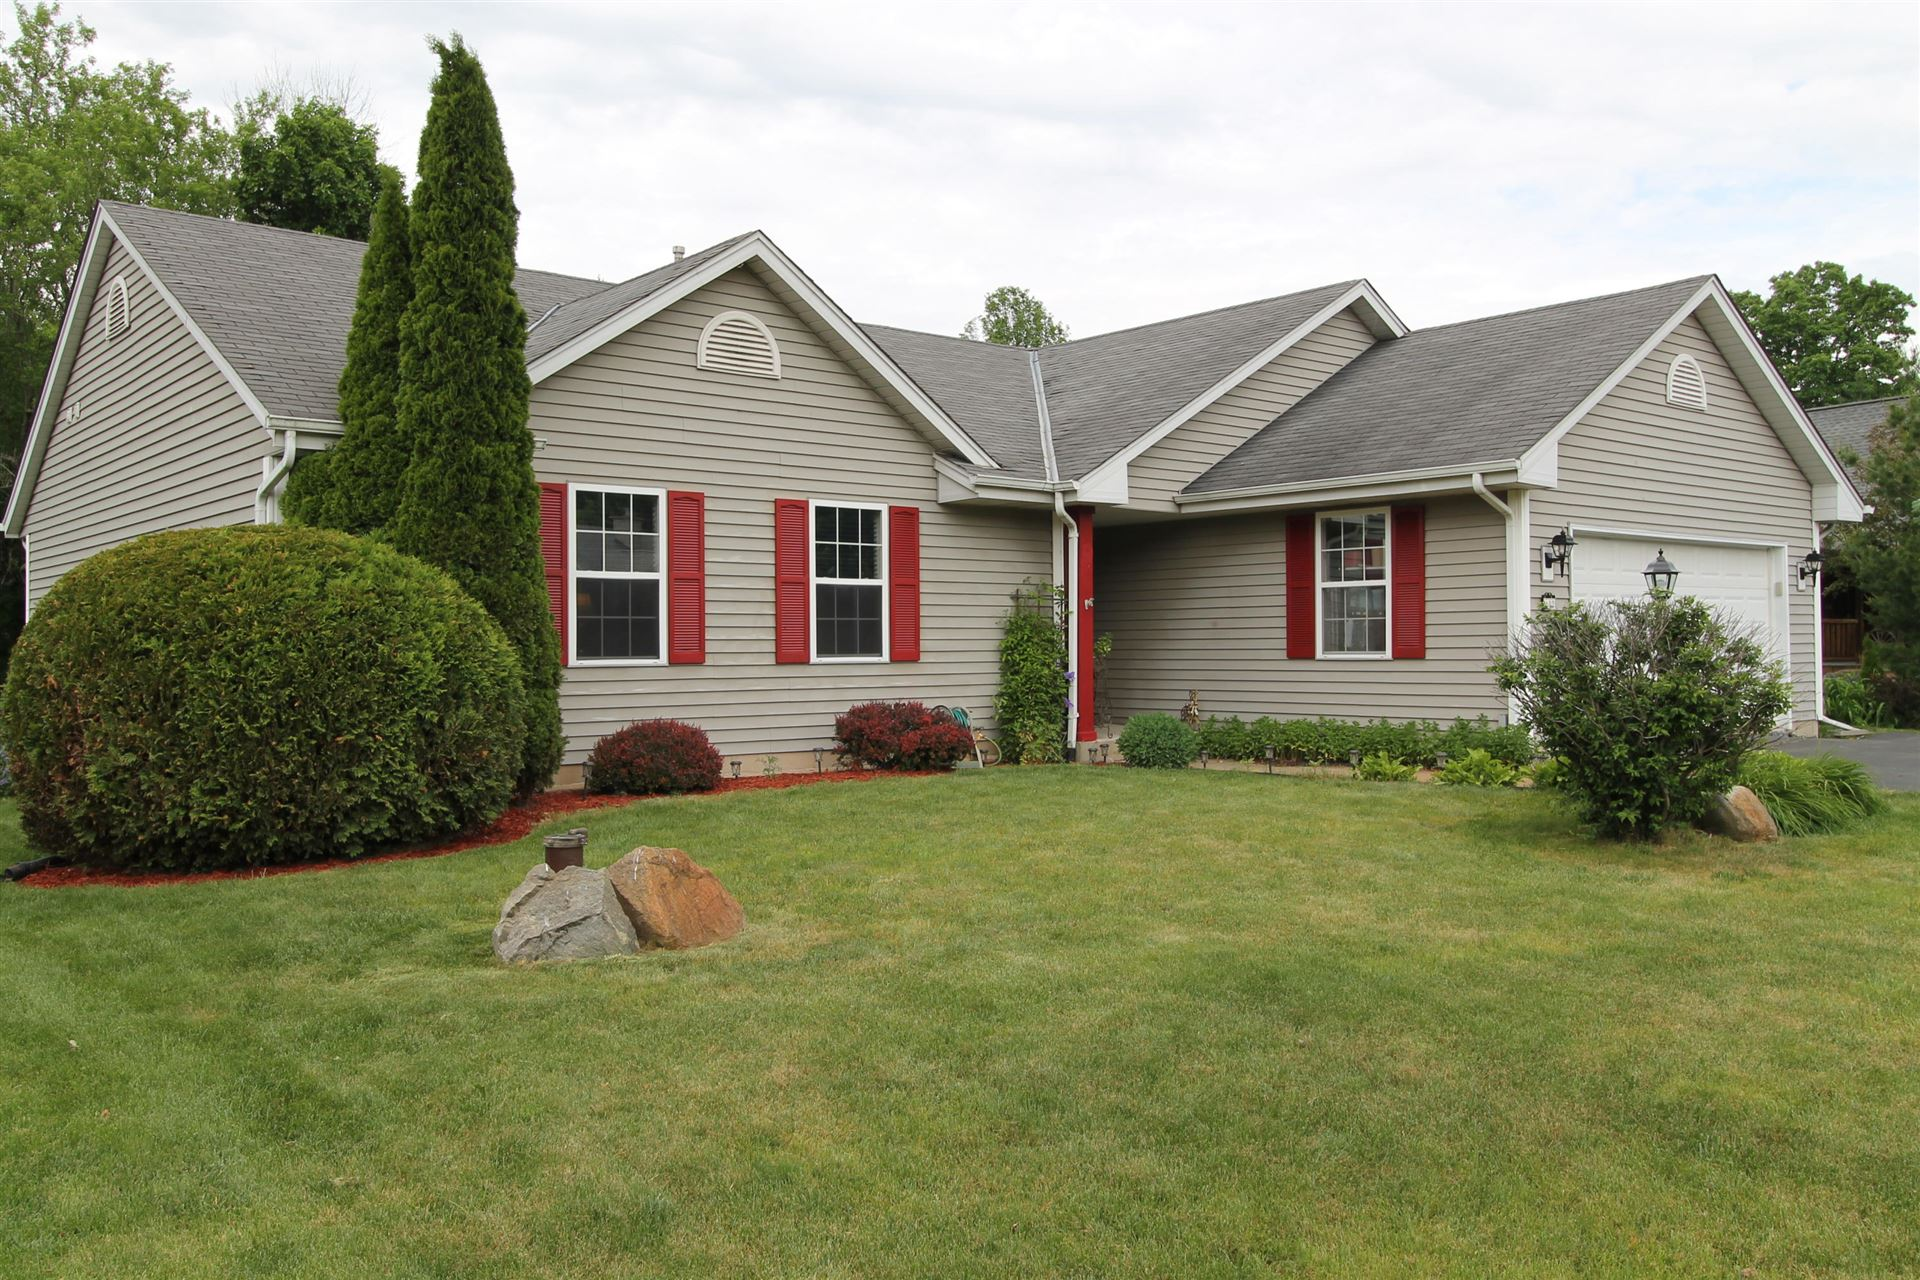 602 Mink Ranch Rd, Rochester, WI 53105 - #: 1694311